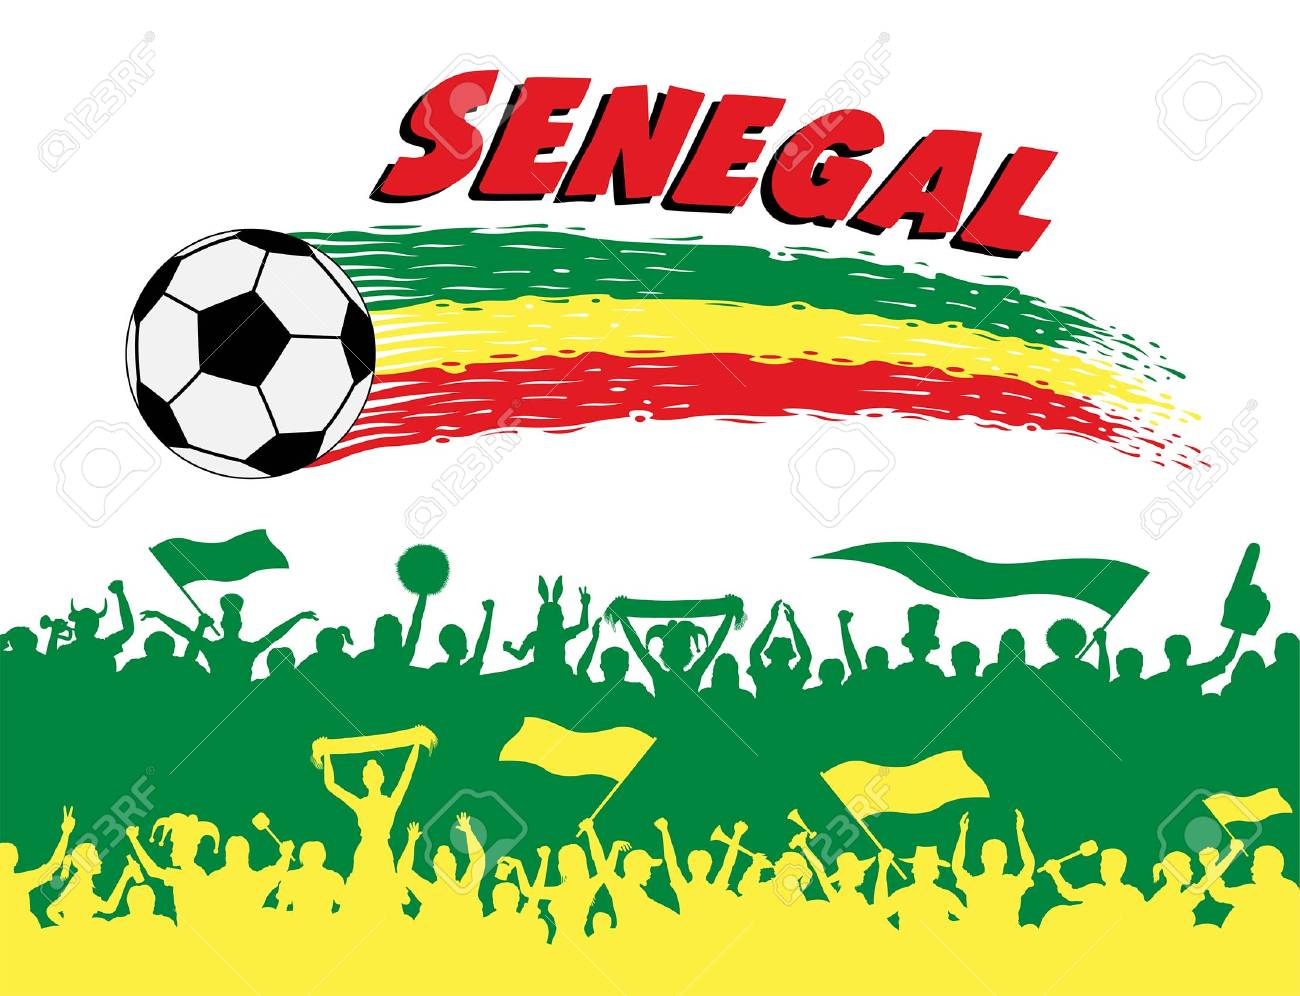 db4003a573c Senegal flag colors with soccer ball and Senegalese supporters silhouettes.  All the objects